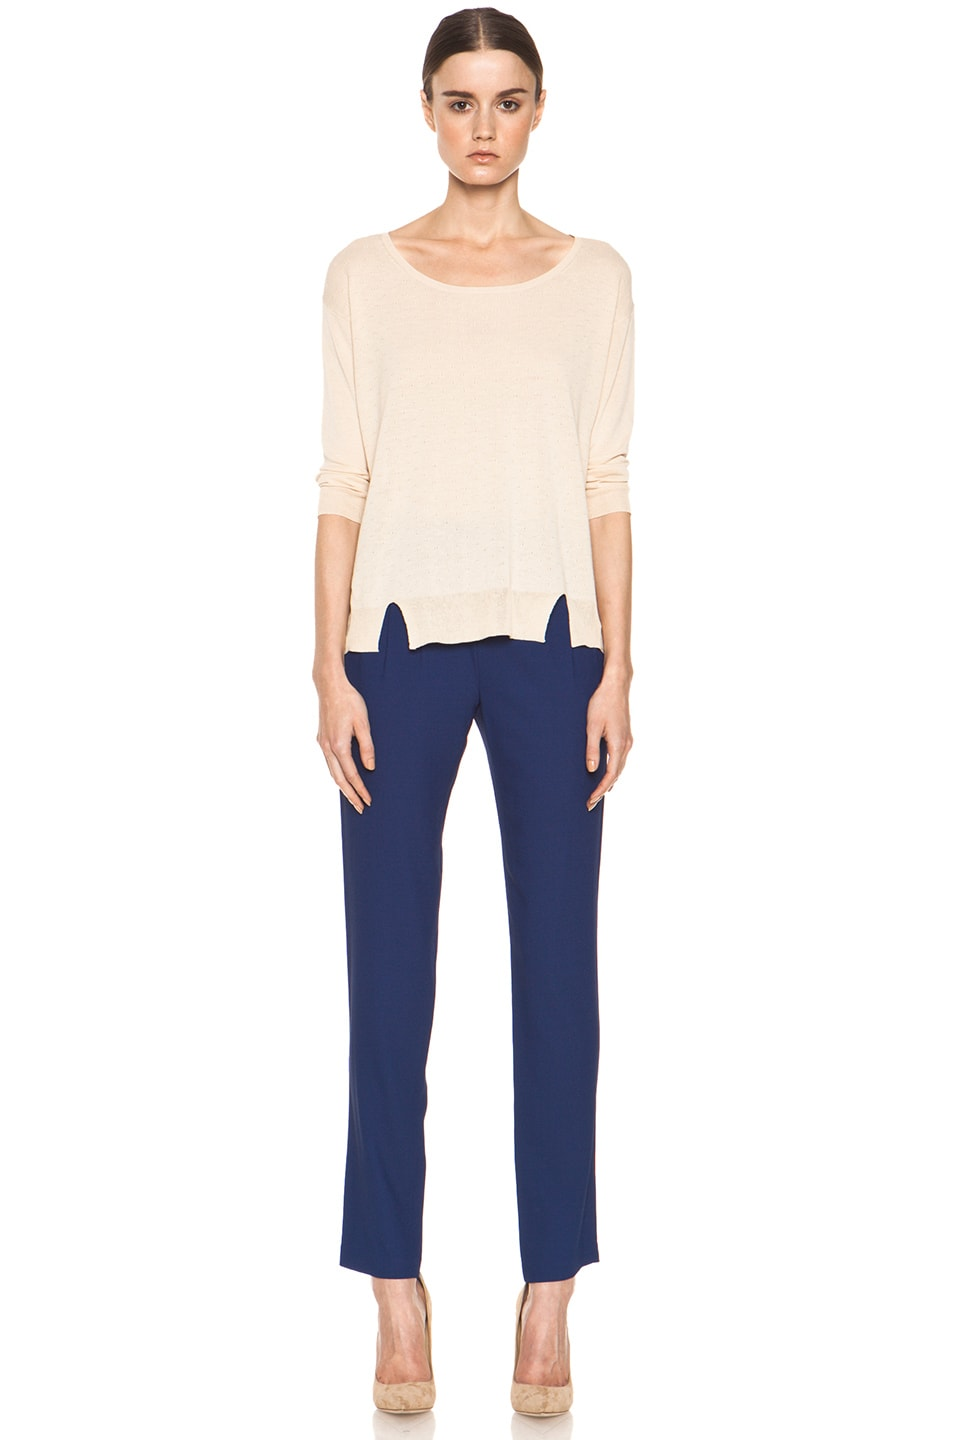 Image 5 of Girl. by Band of Outsiders Malibu Basic Sweater in Nude